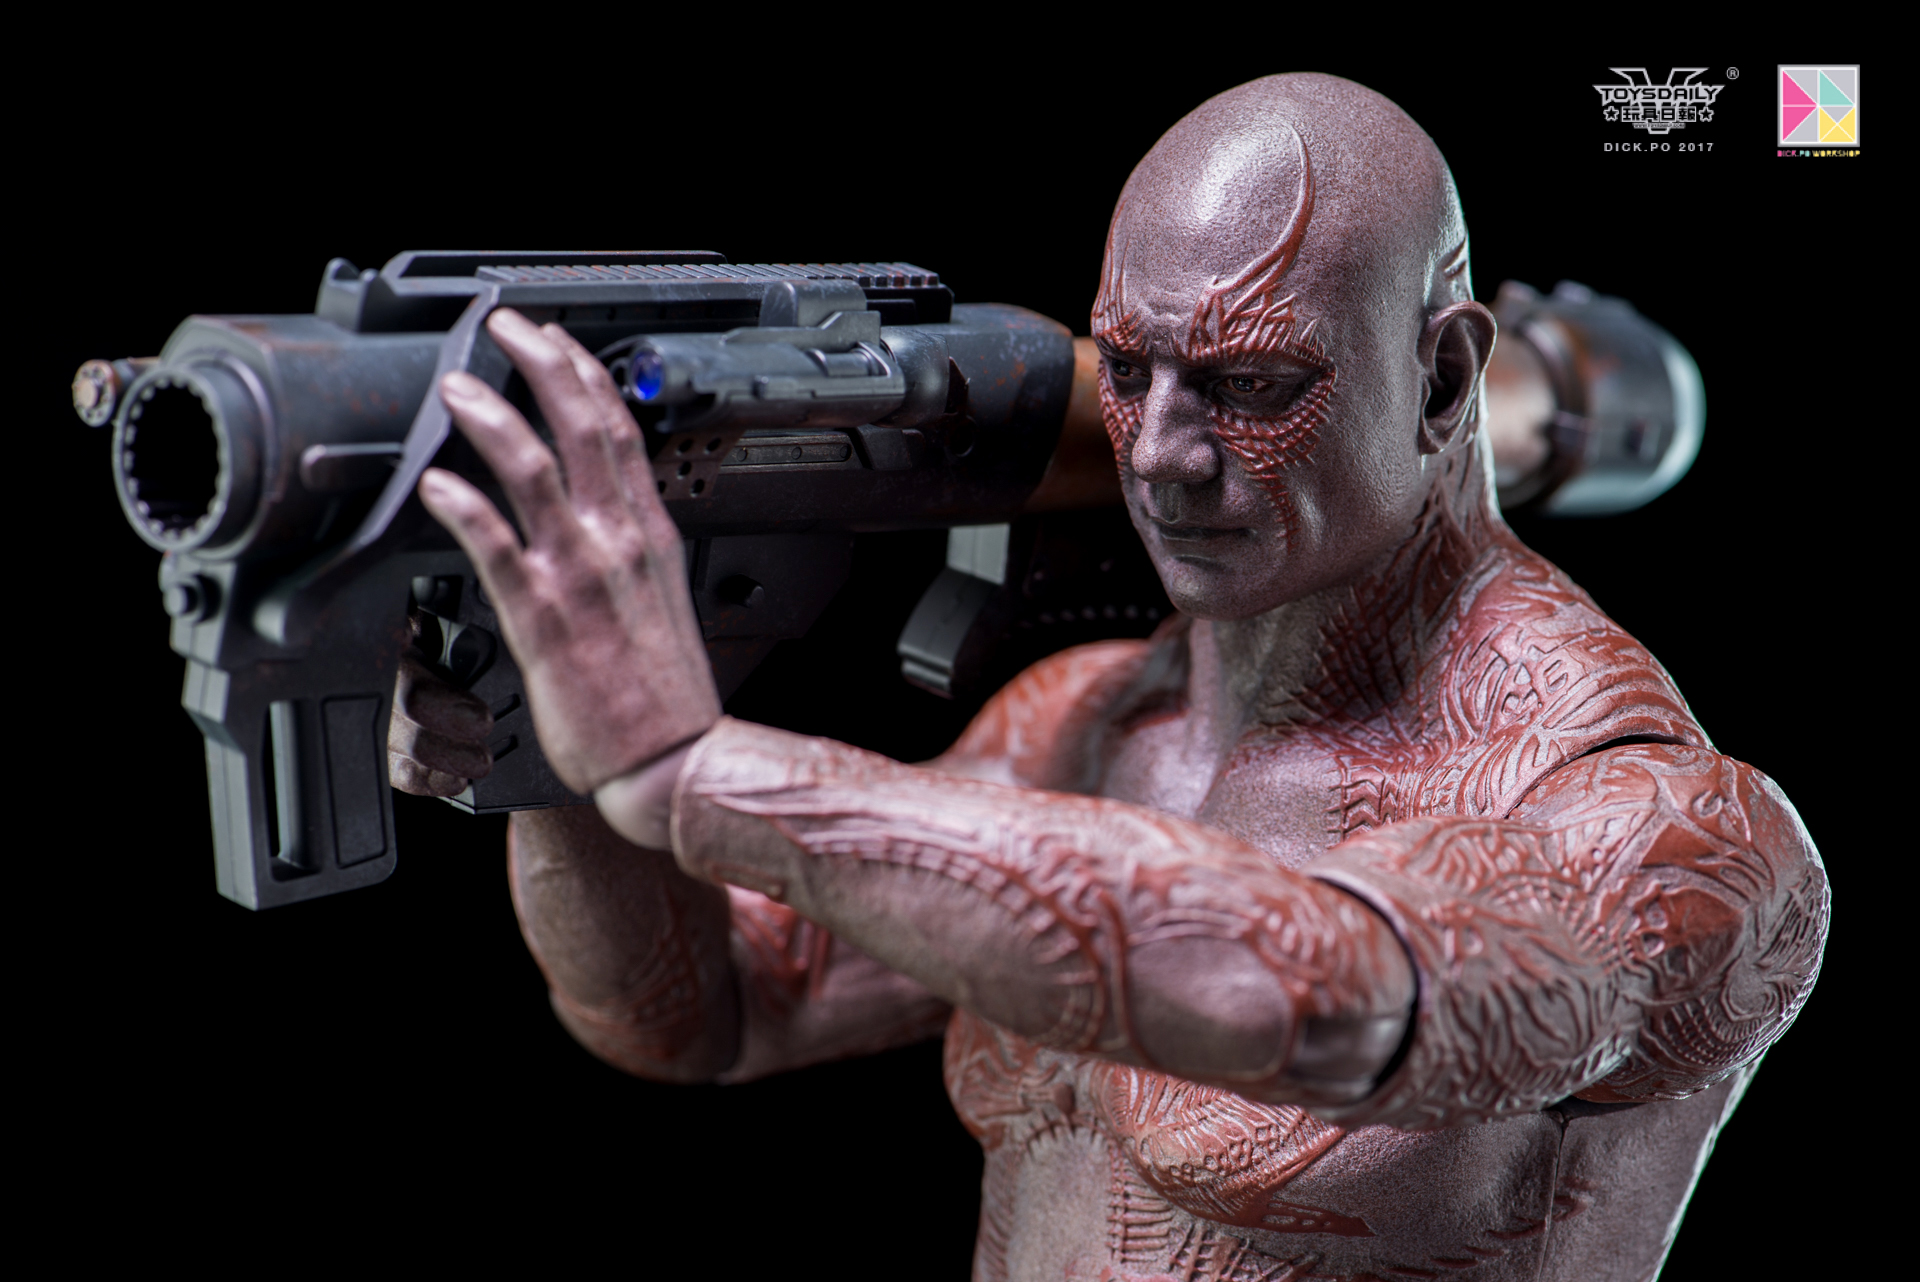 toysdaily_dick.po_Hottoys_DARX-47.jpg